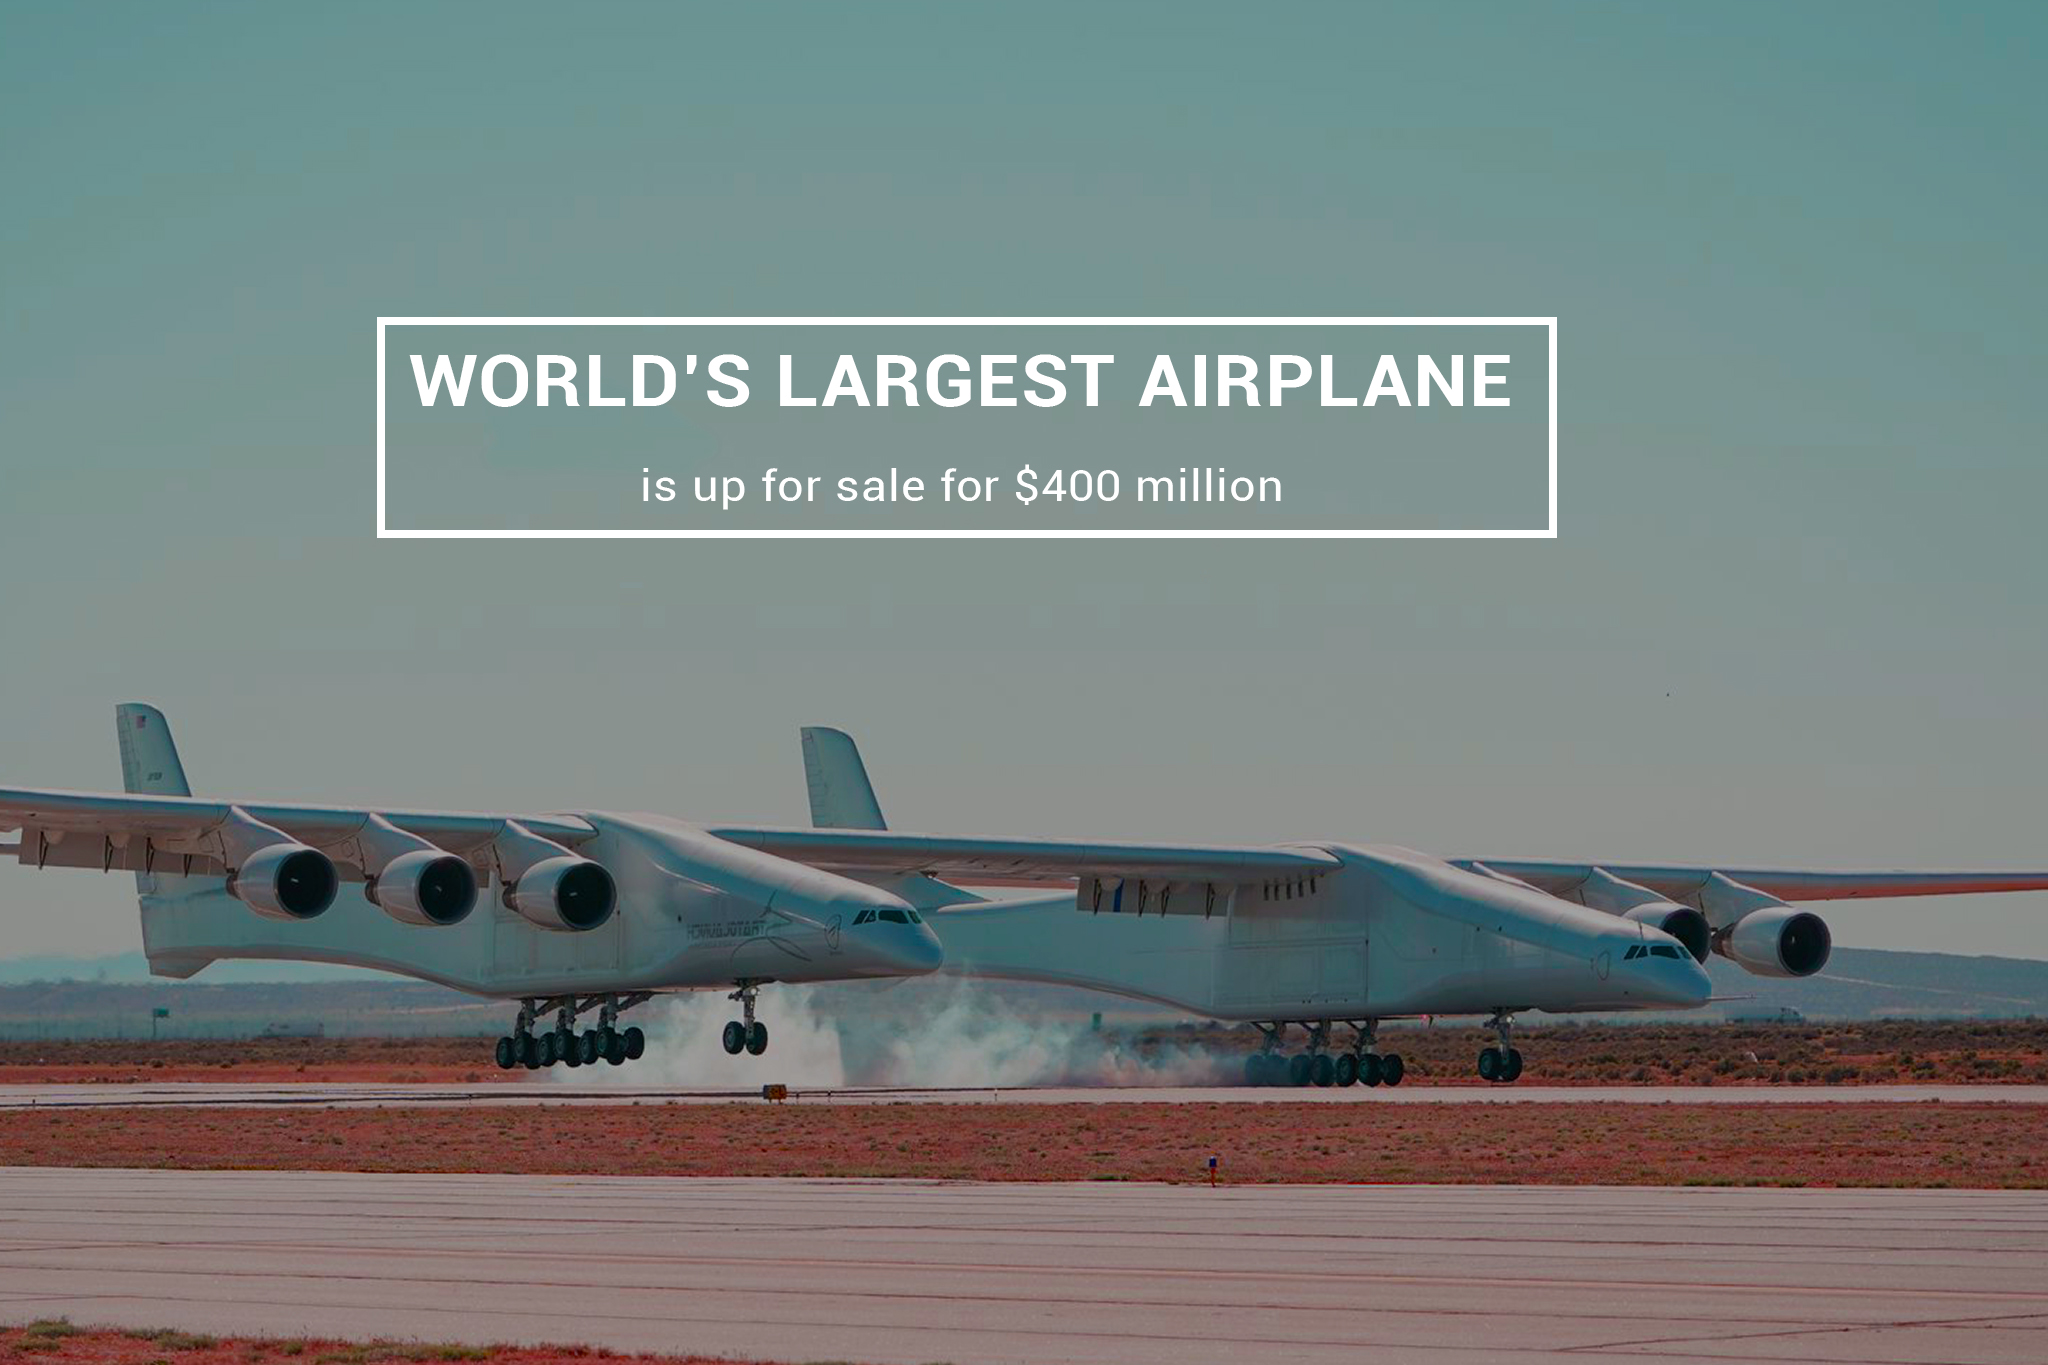 The Largest Plane of the World Set for Sale in $400 million